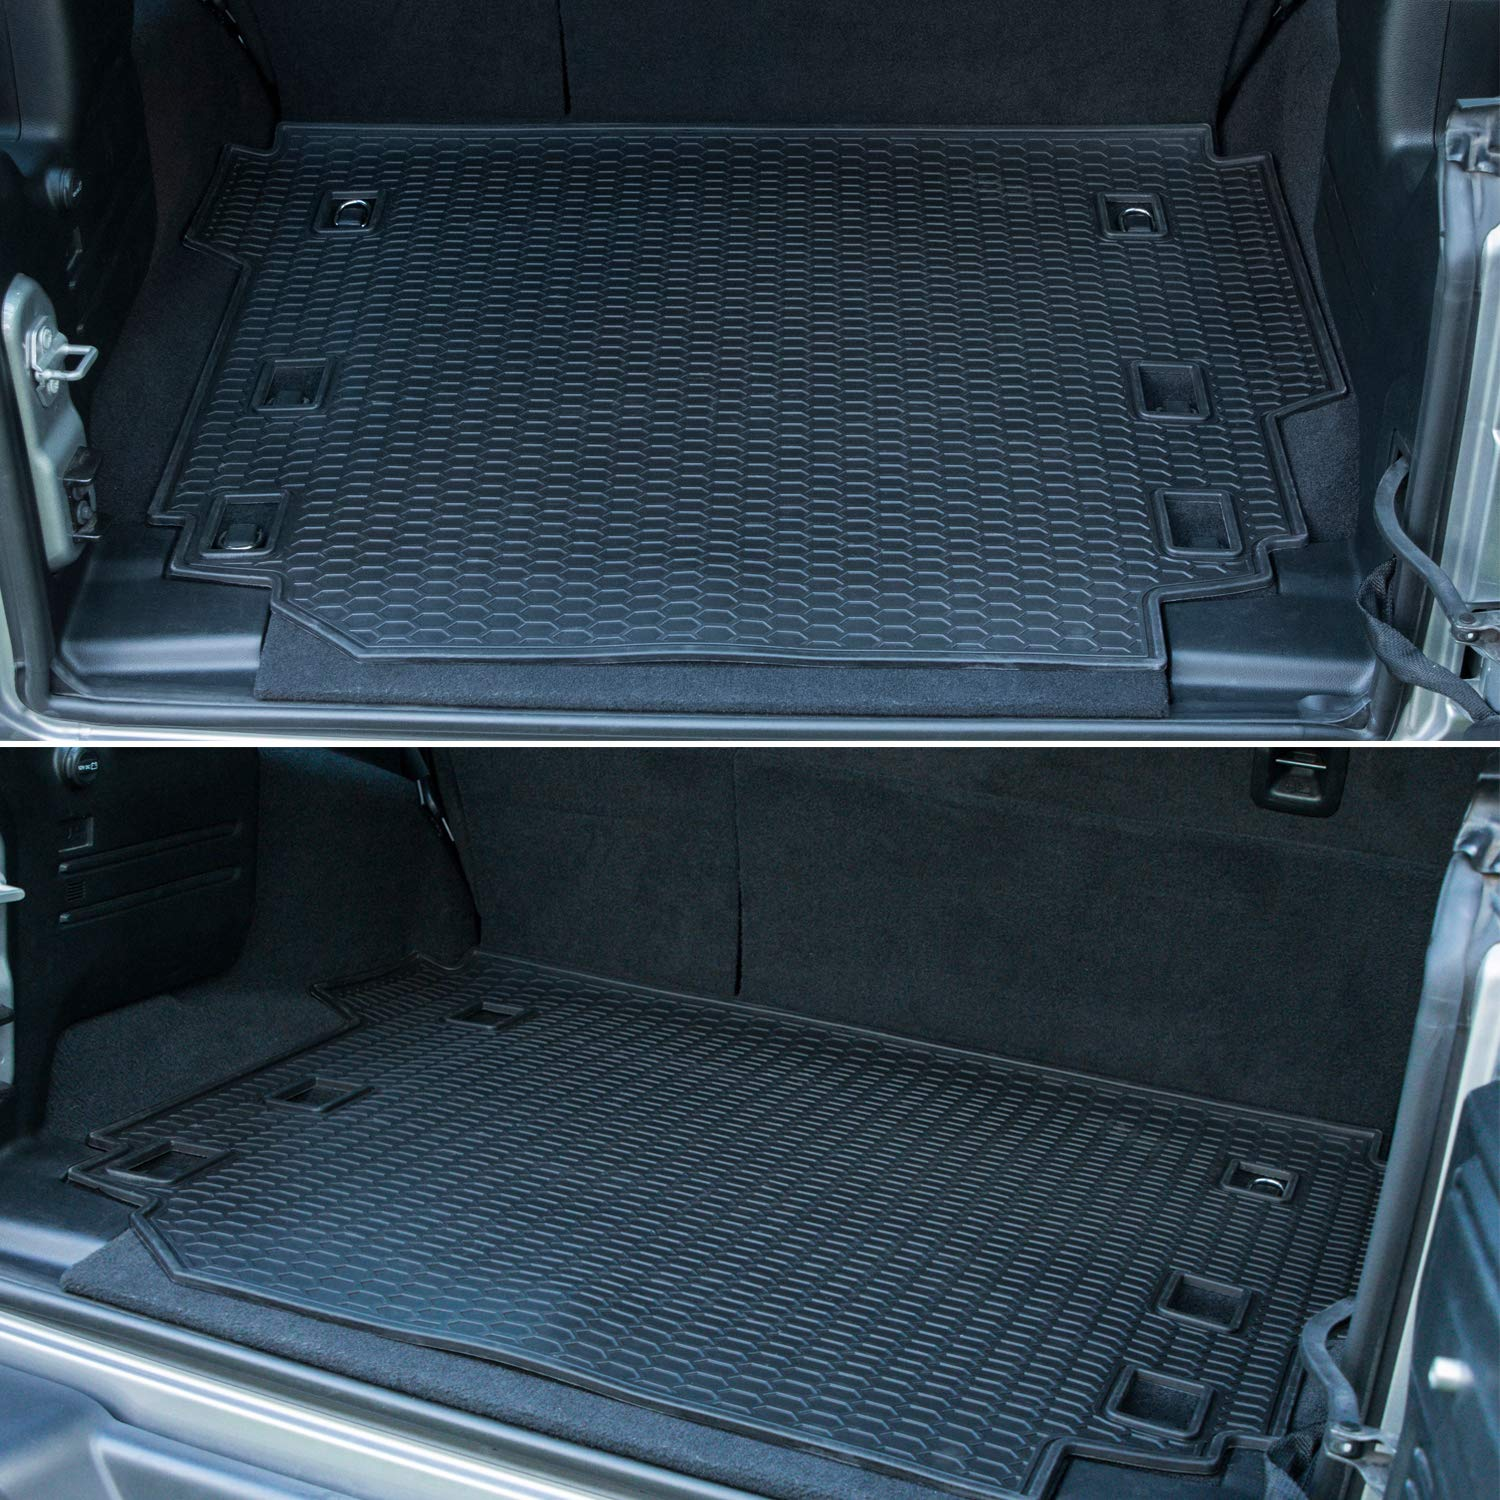 Environmentally Friendly Rubber Custom Fit Bonbo Trunk Cargo Liner Mat for Jeep Wrangler JL 2018 2019 2020 Unlimited 4 Doors Heavy Duty Odorless All Weather Guard